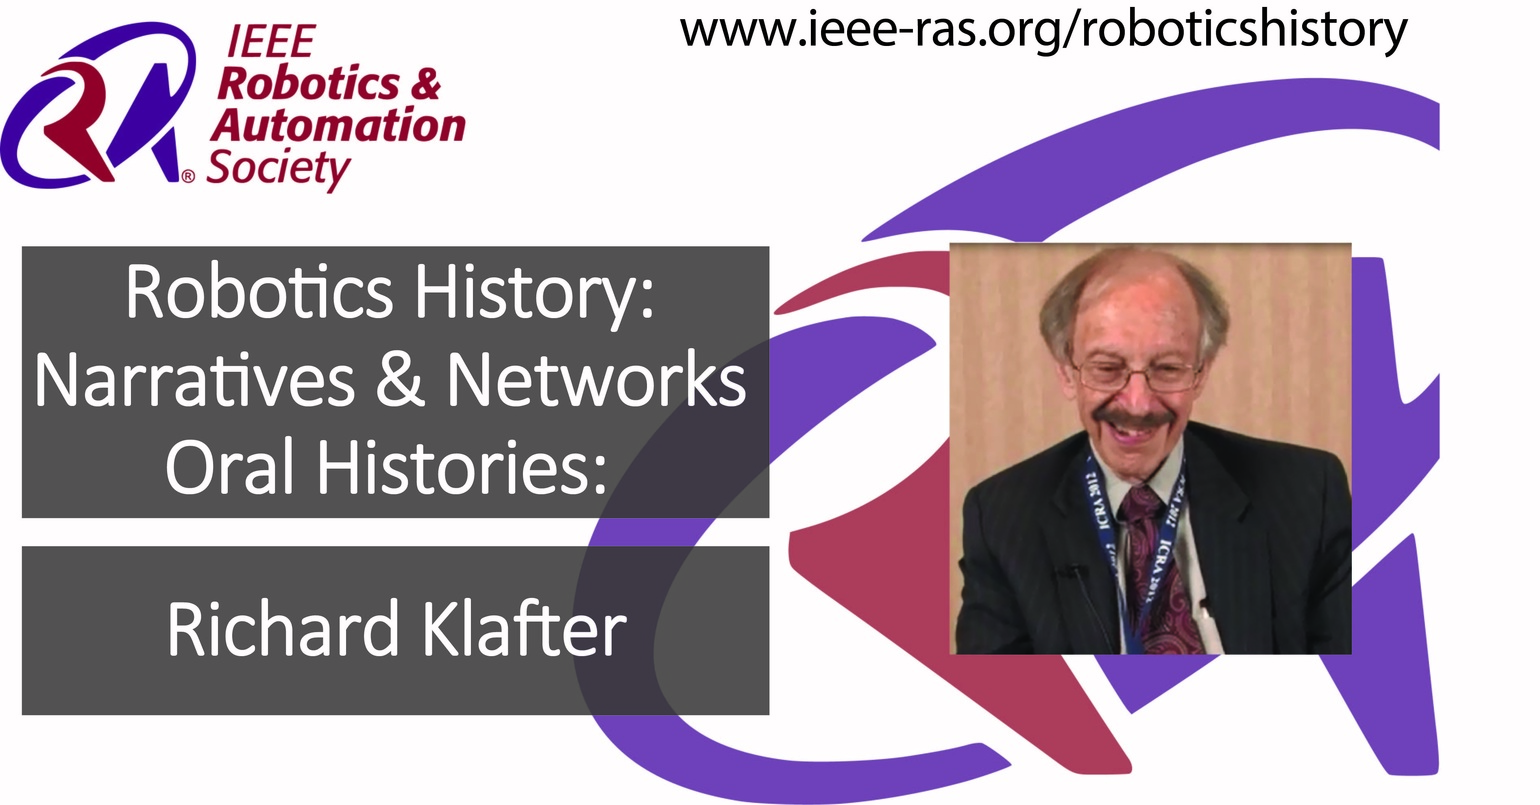 Robotics History: Narratives and Networks Oral Histories: Richard Klafter